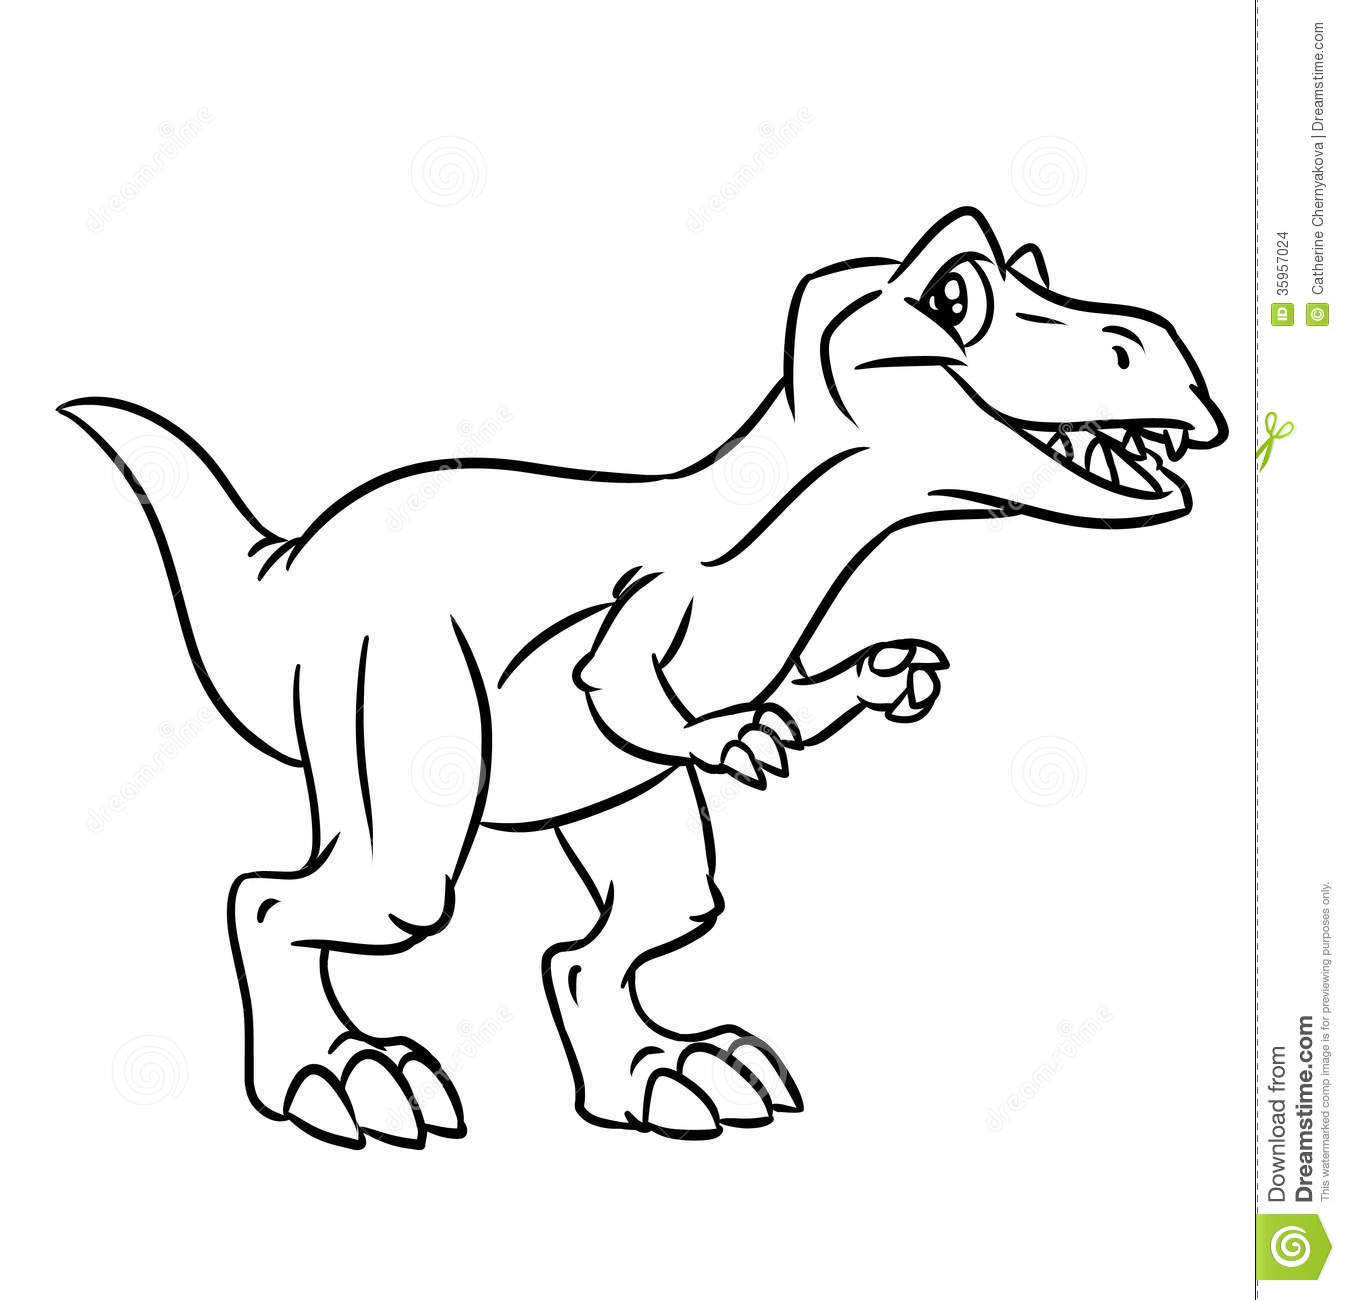 coloring pages dinosaur stock photos image 15595993